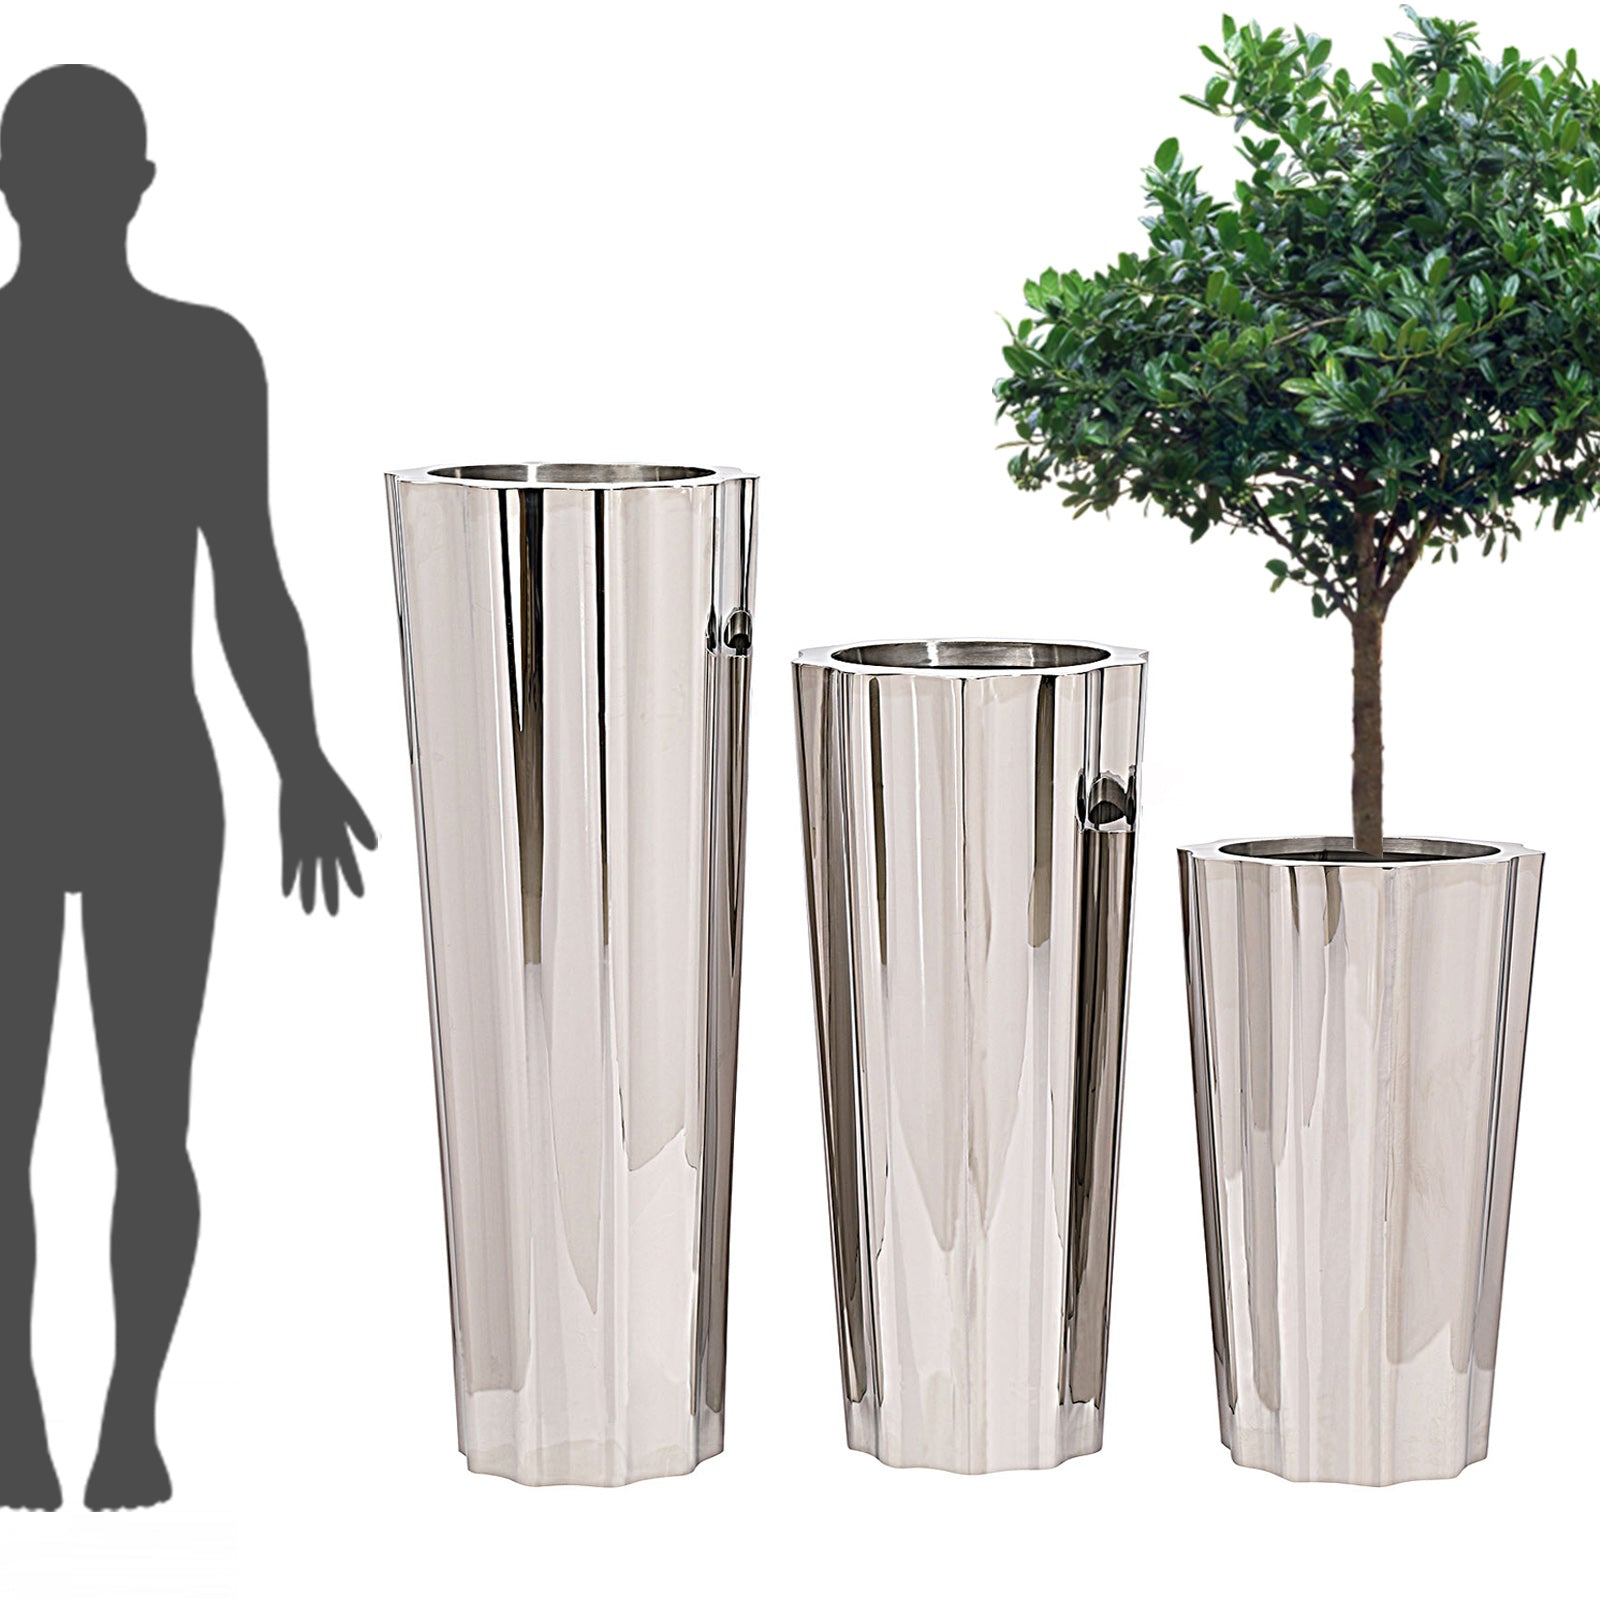 Set of 3 large Handmade  Stainless steel  planter box  JKS063-64-65